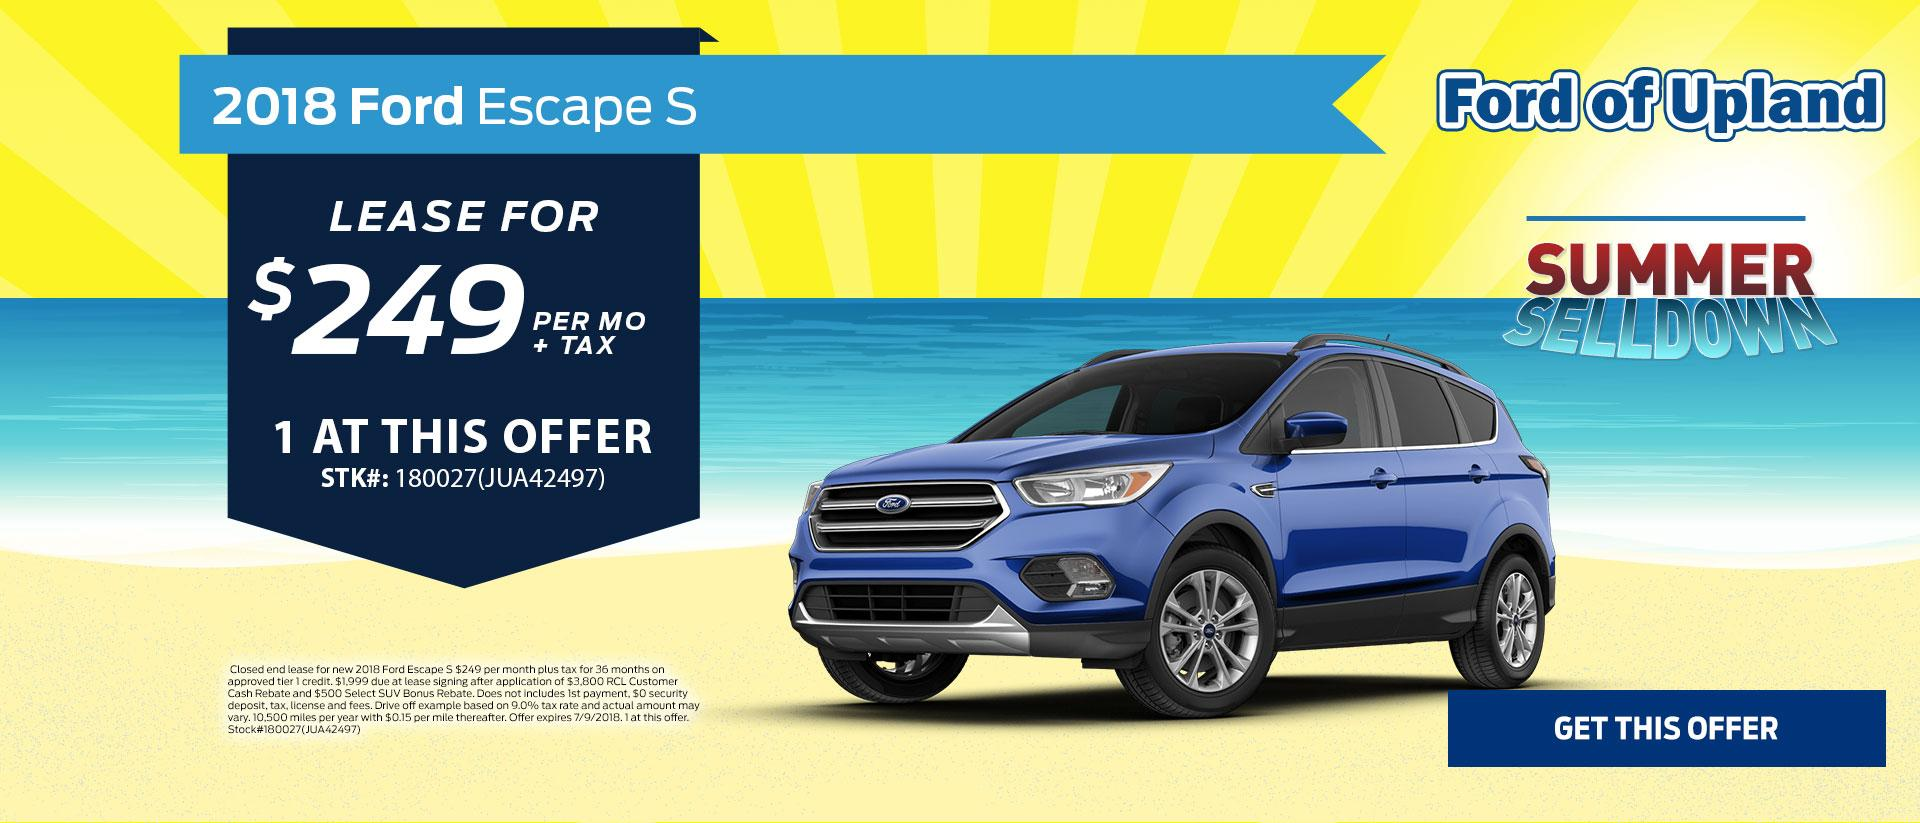 2018 Escape Lease Offer